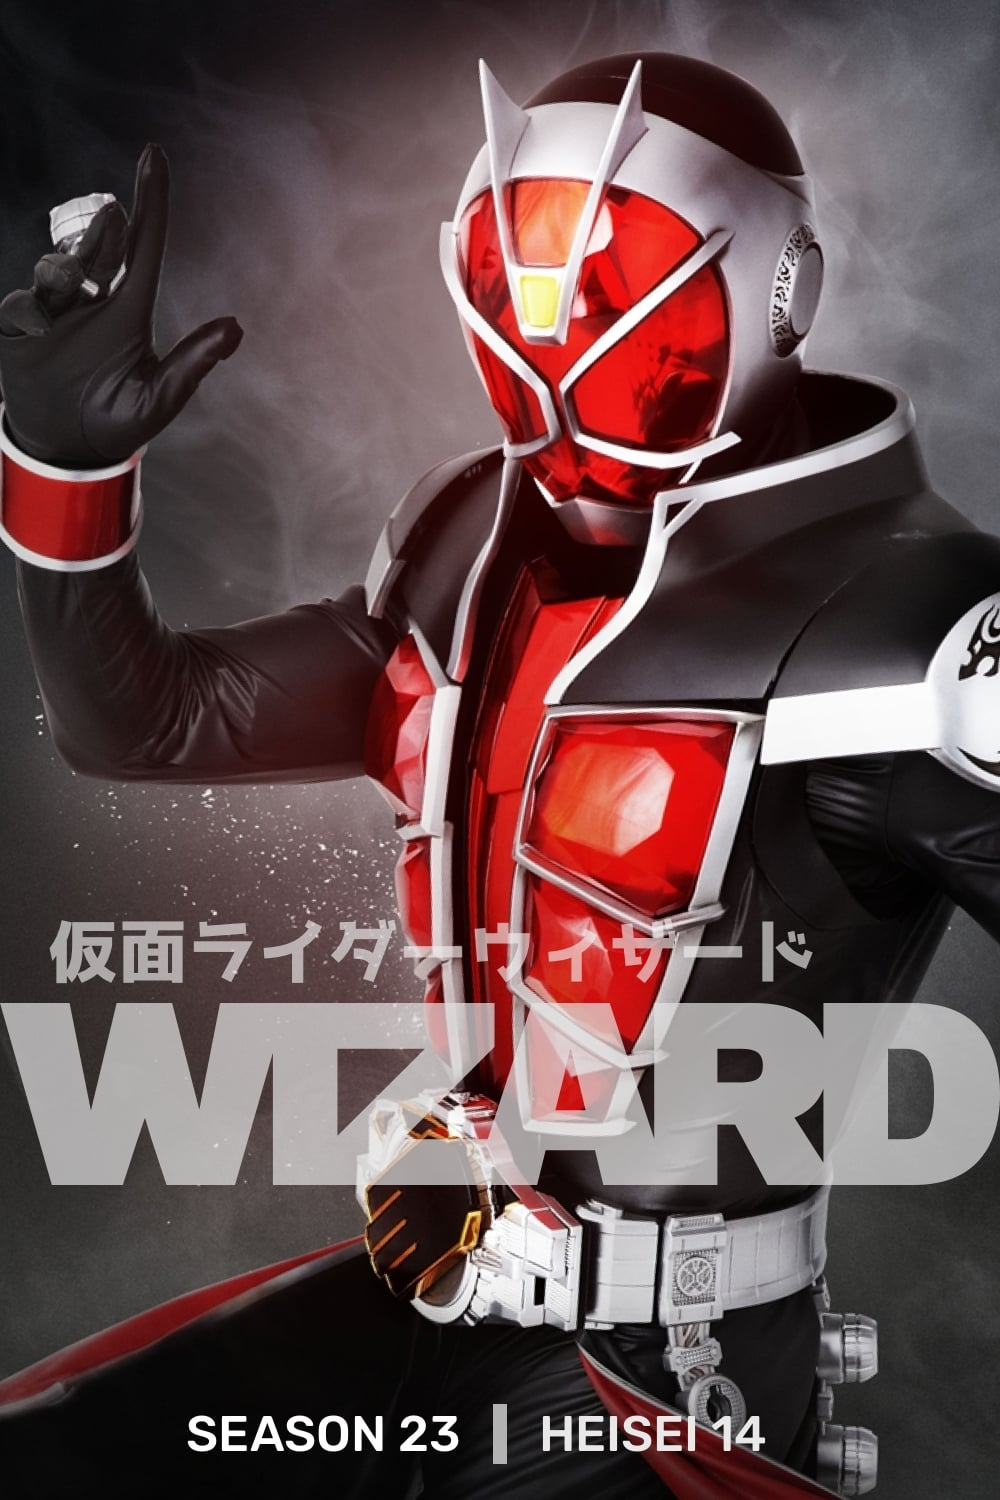 Kamen Rider - Season 21 Episode 2 : Greed, Ice Candy, Present Season 23